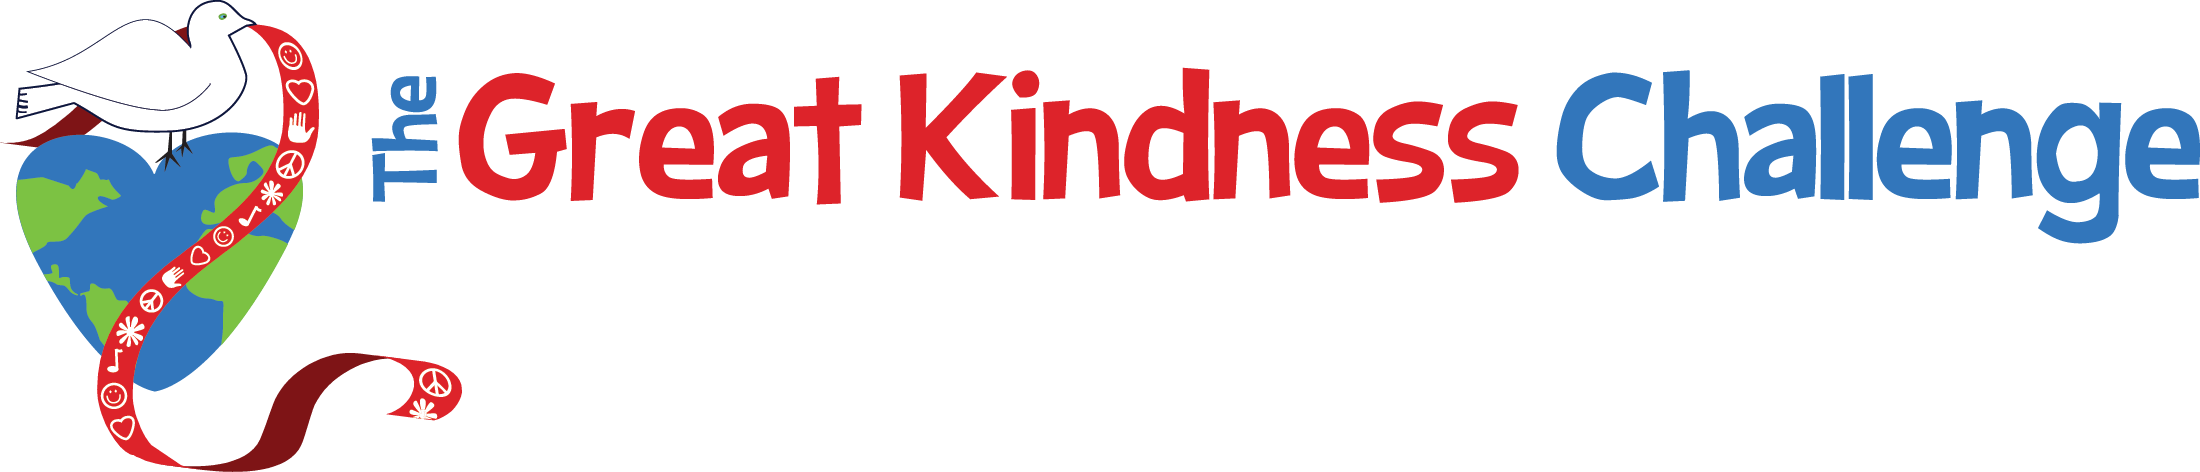 The Great Kindness Challenge Banner